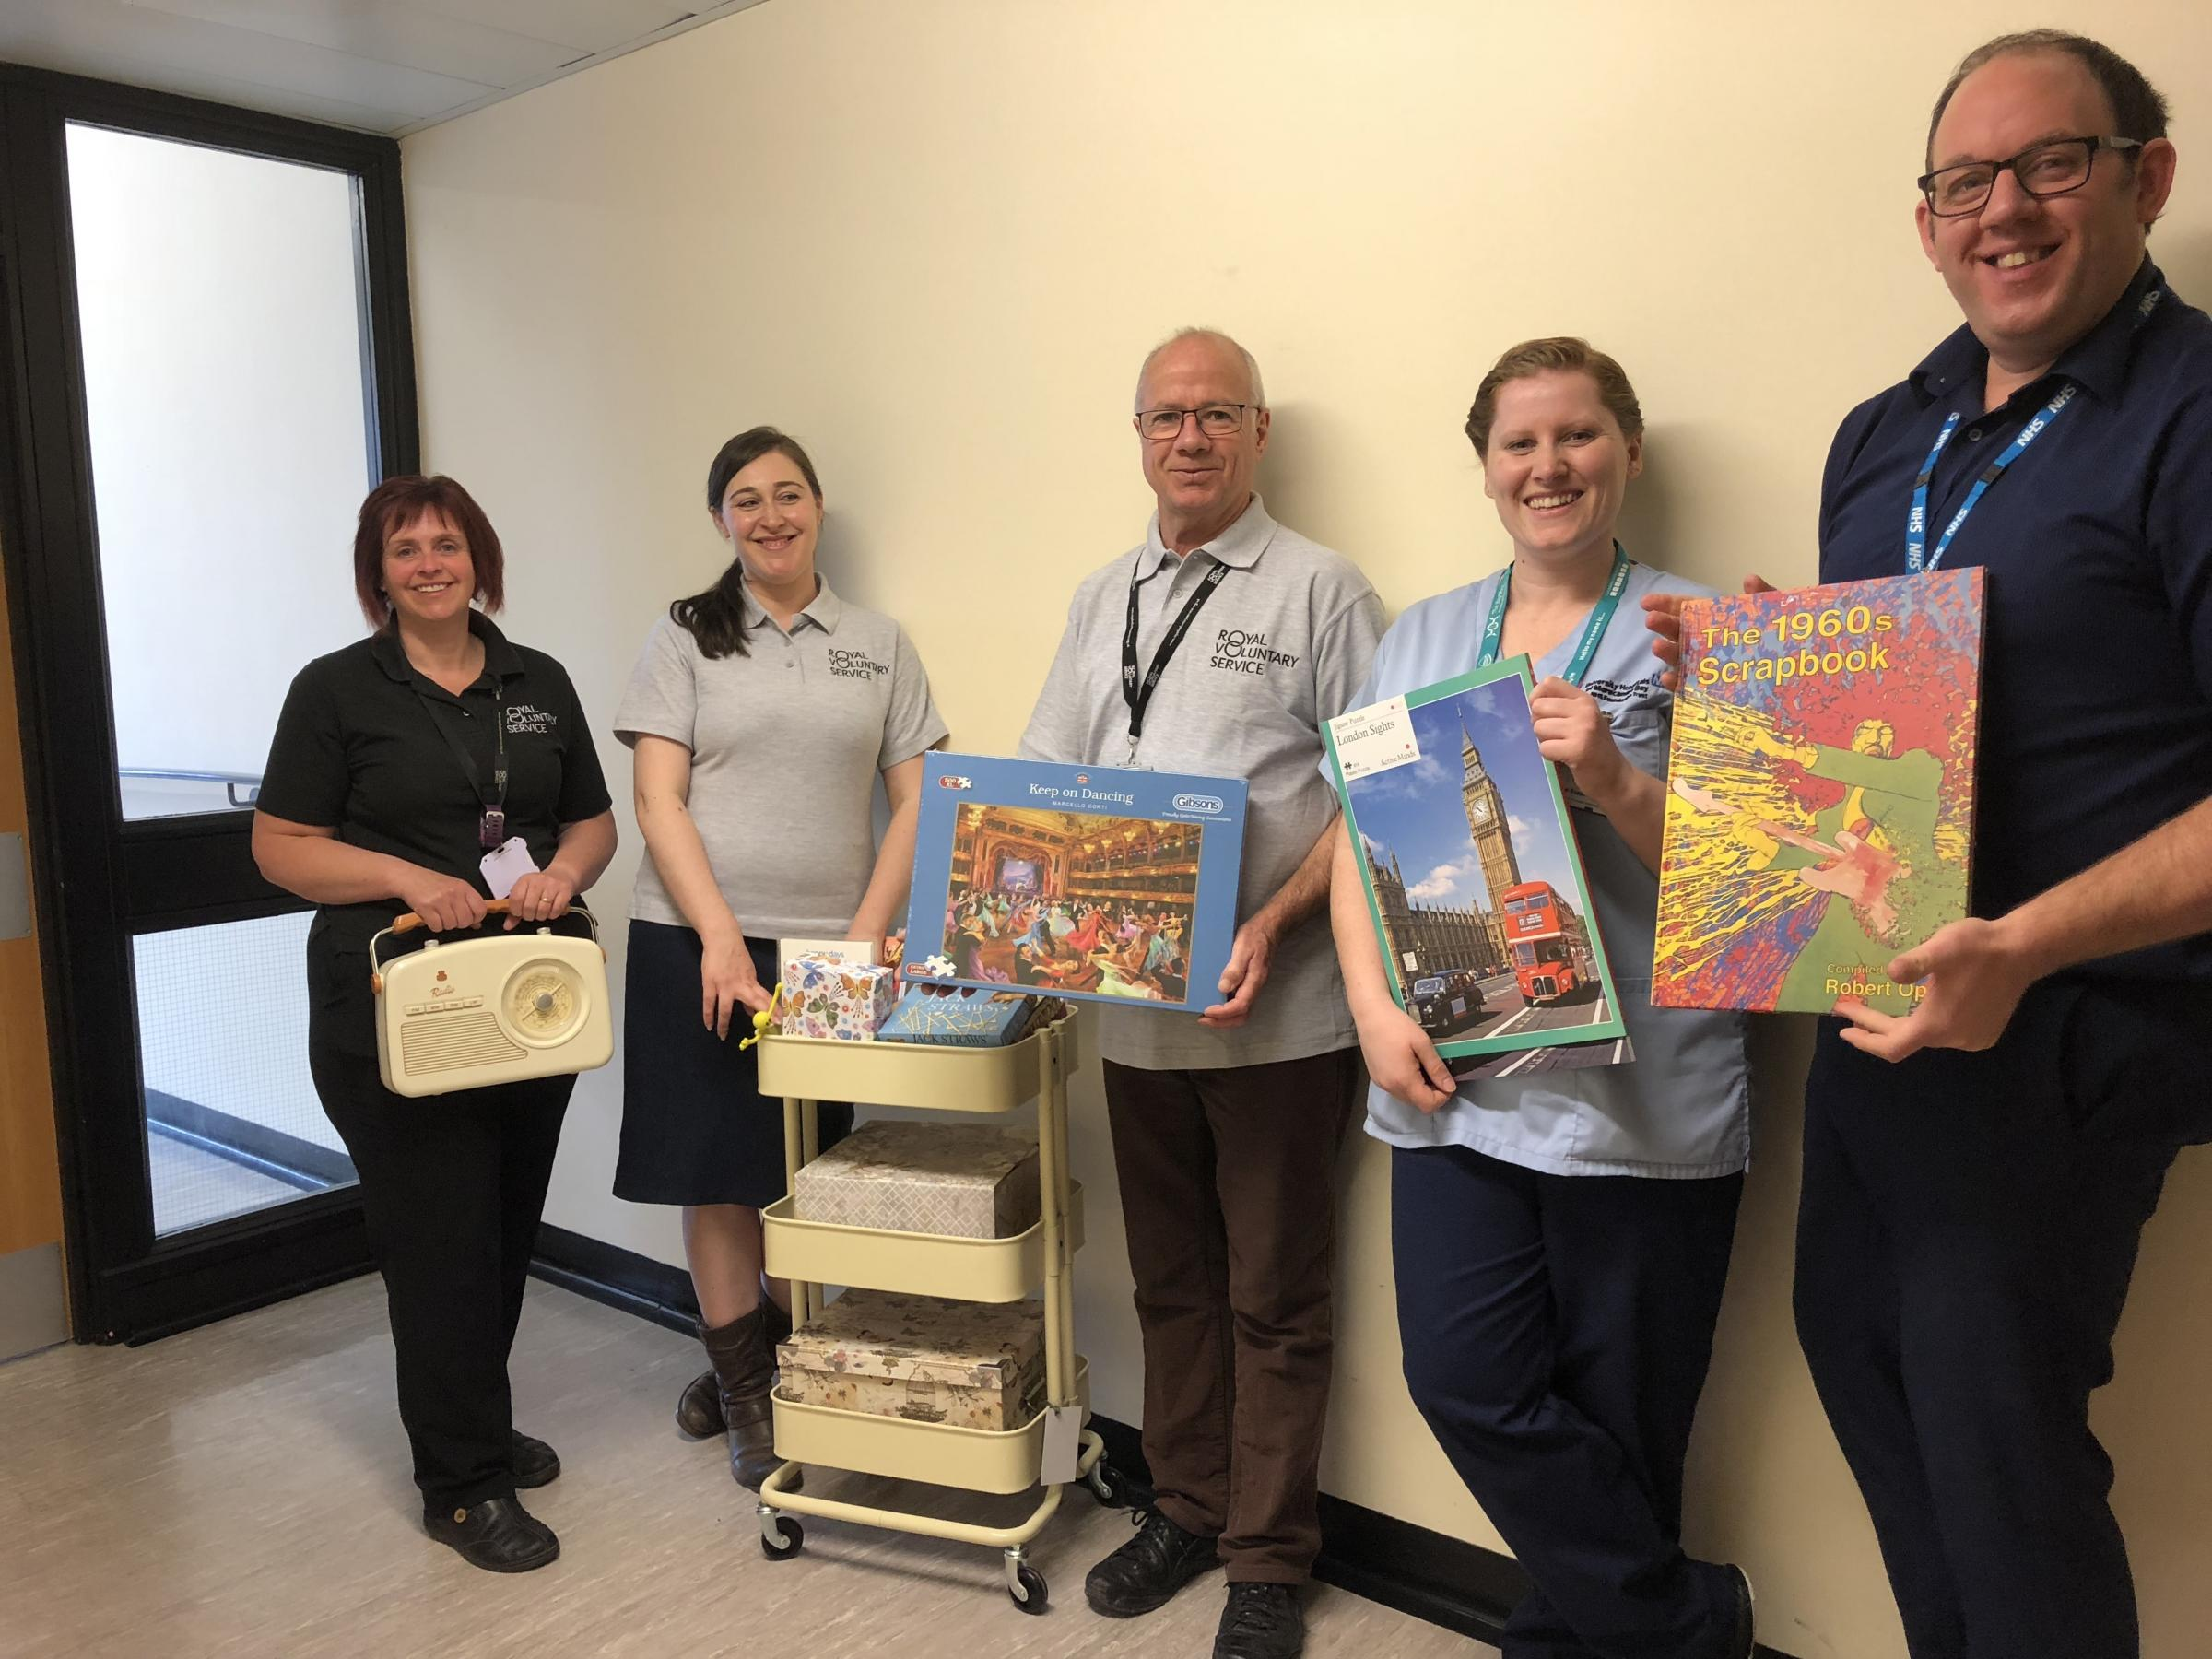 Volunteers from the Royal Voluntary Service (RVS) have donated £500 of gifts to help dementia patients at Westmorland General Hospital, Kendal, relieve boredom and isolation.